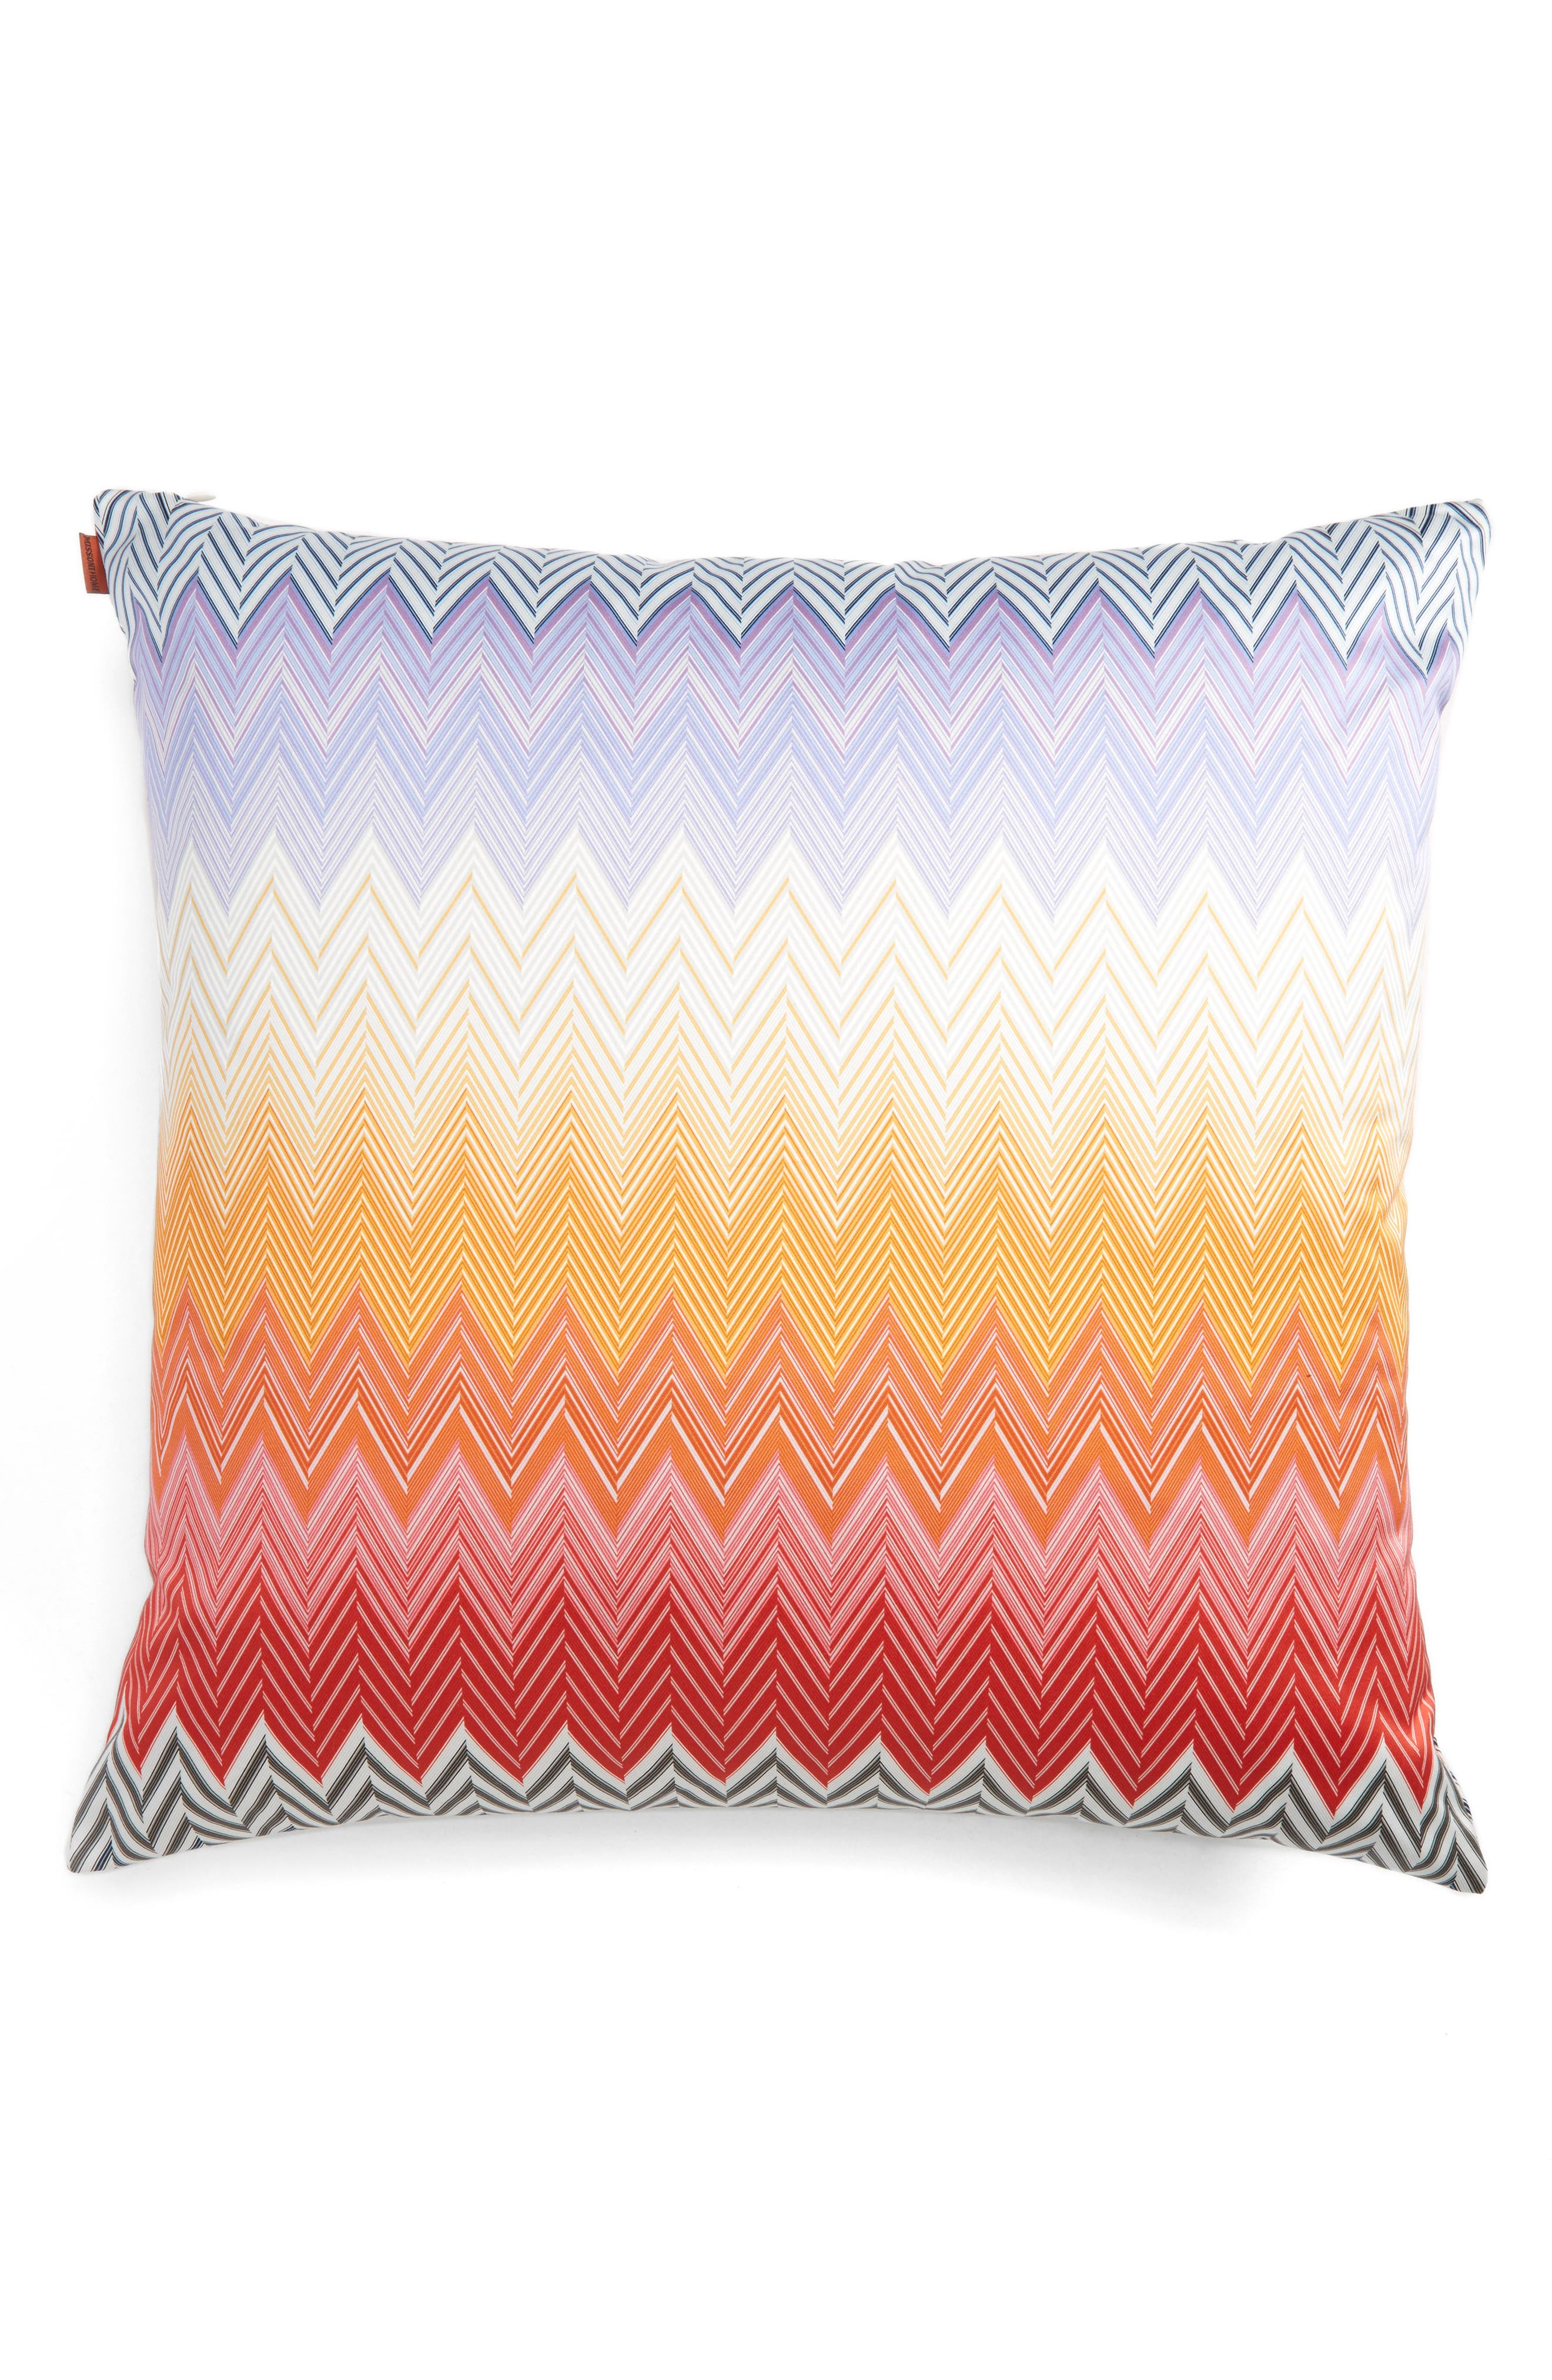 Sabaudia Accent Pillow,                         Main,                         color, Multi Red